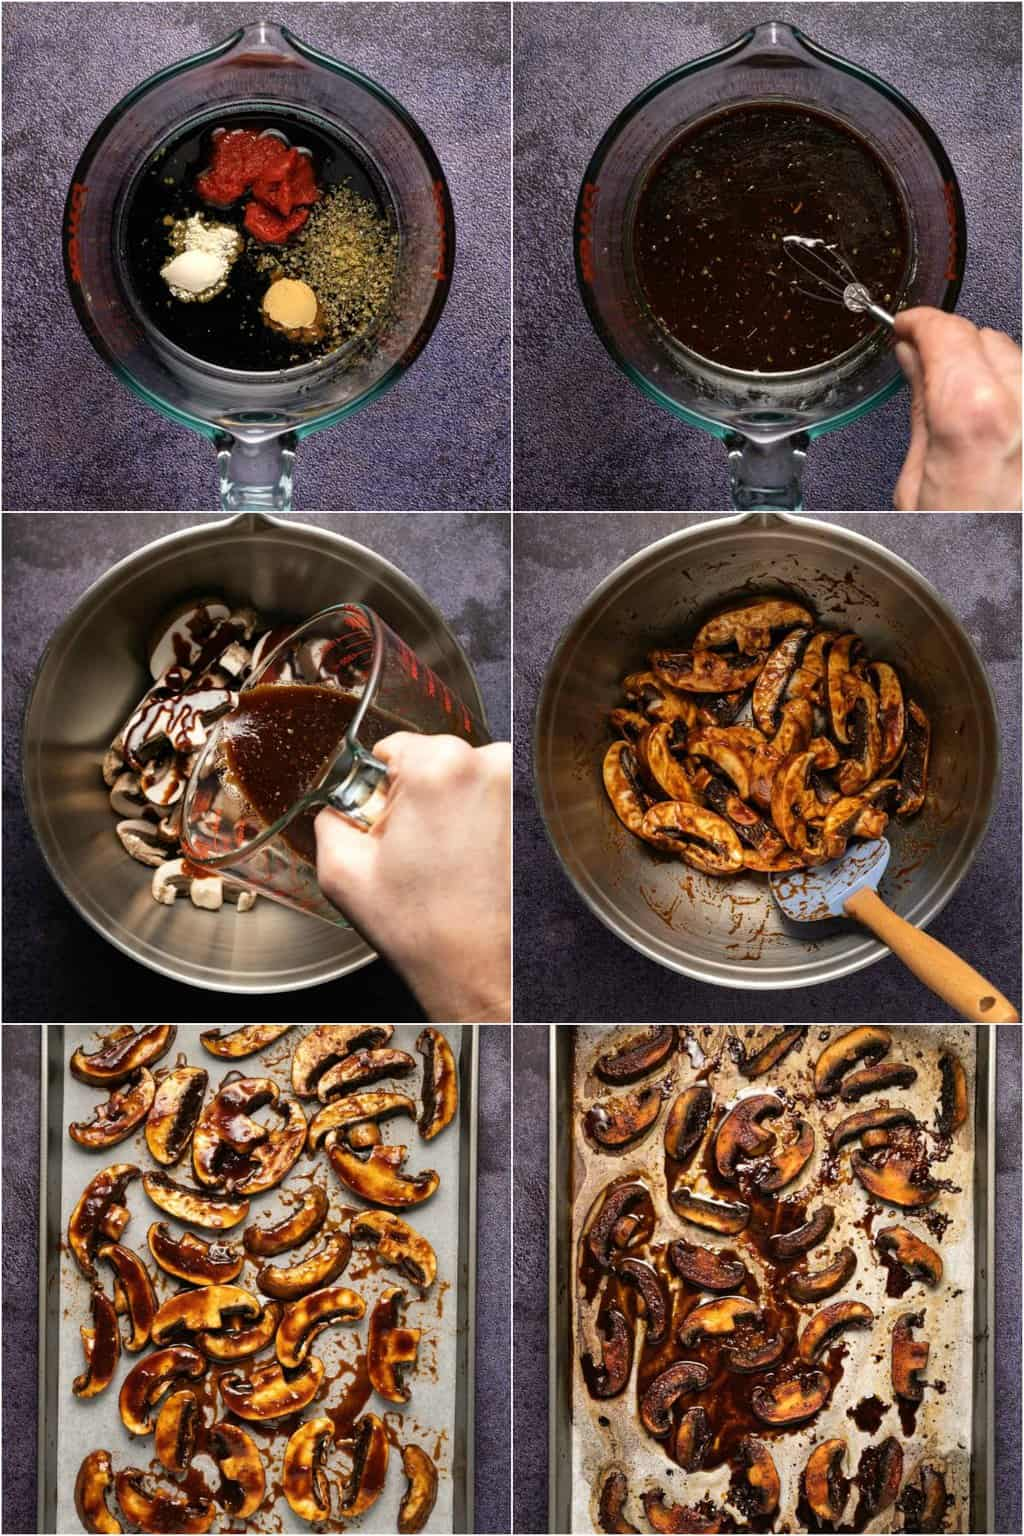 Step by step process photo collage of marinating and baking mushrooms for a poke bowl.